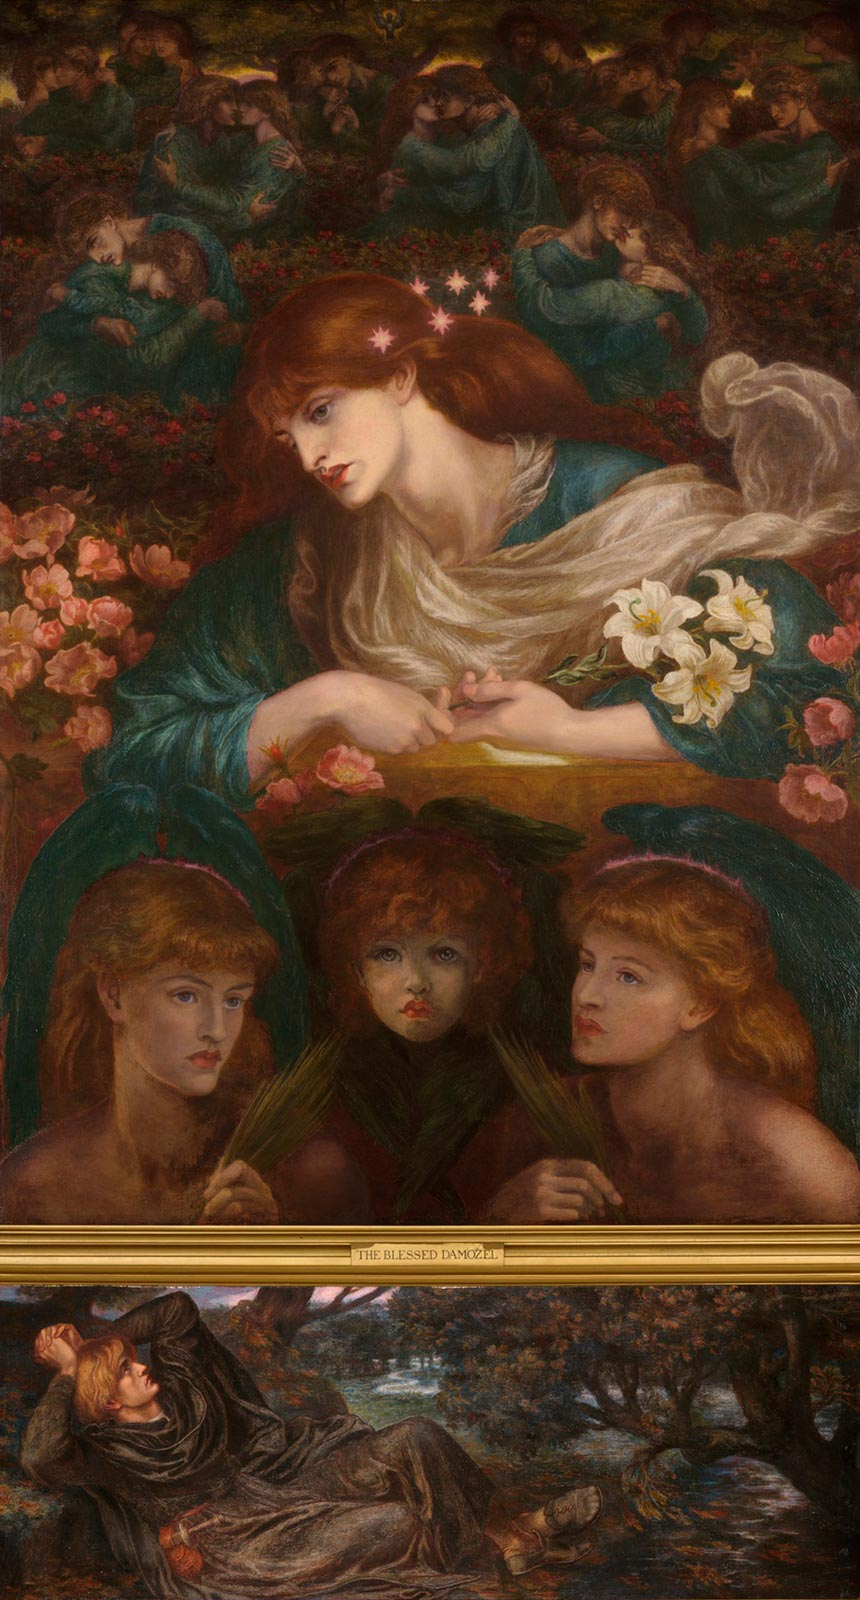 Dante Gabriel Rossetti: The Blessed Damozel (wikipedia)